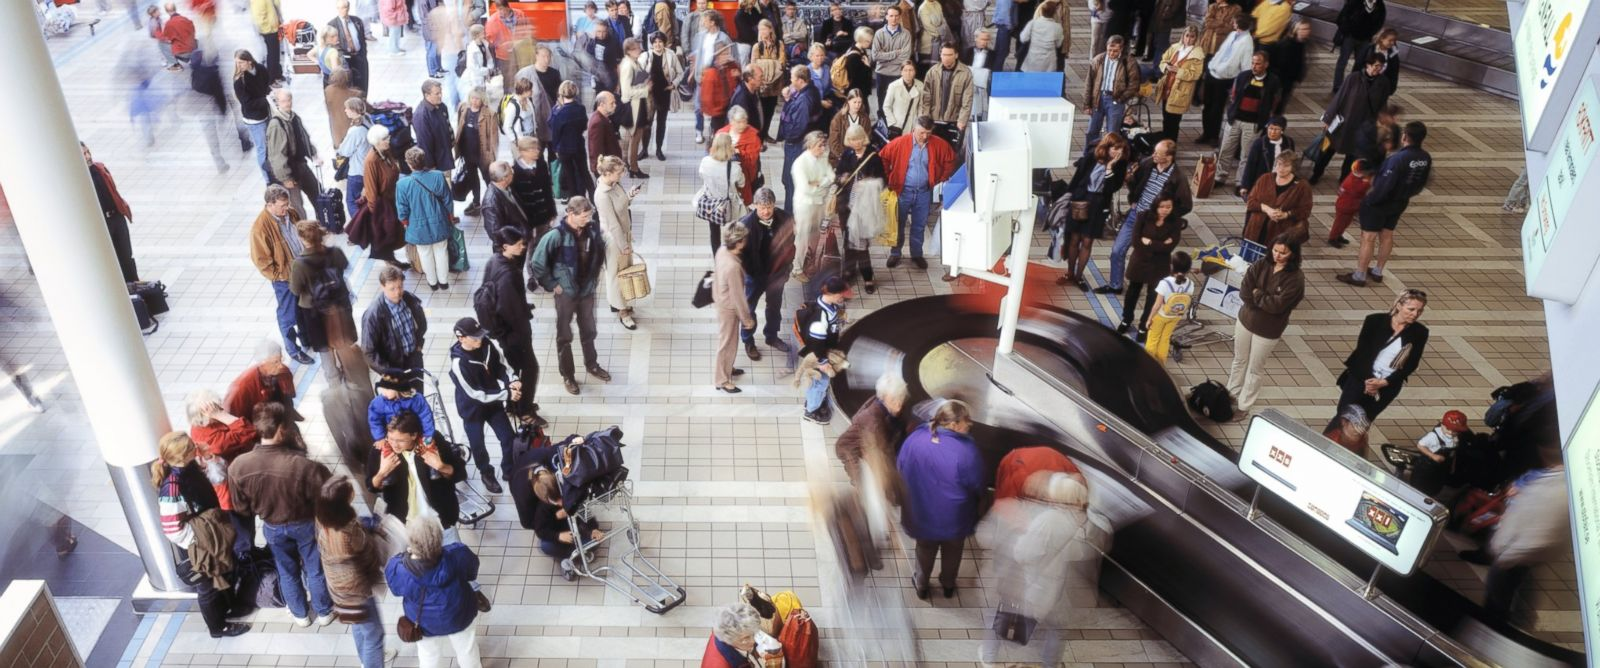 PHOTO: People in an airport are pictured in this stock image.